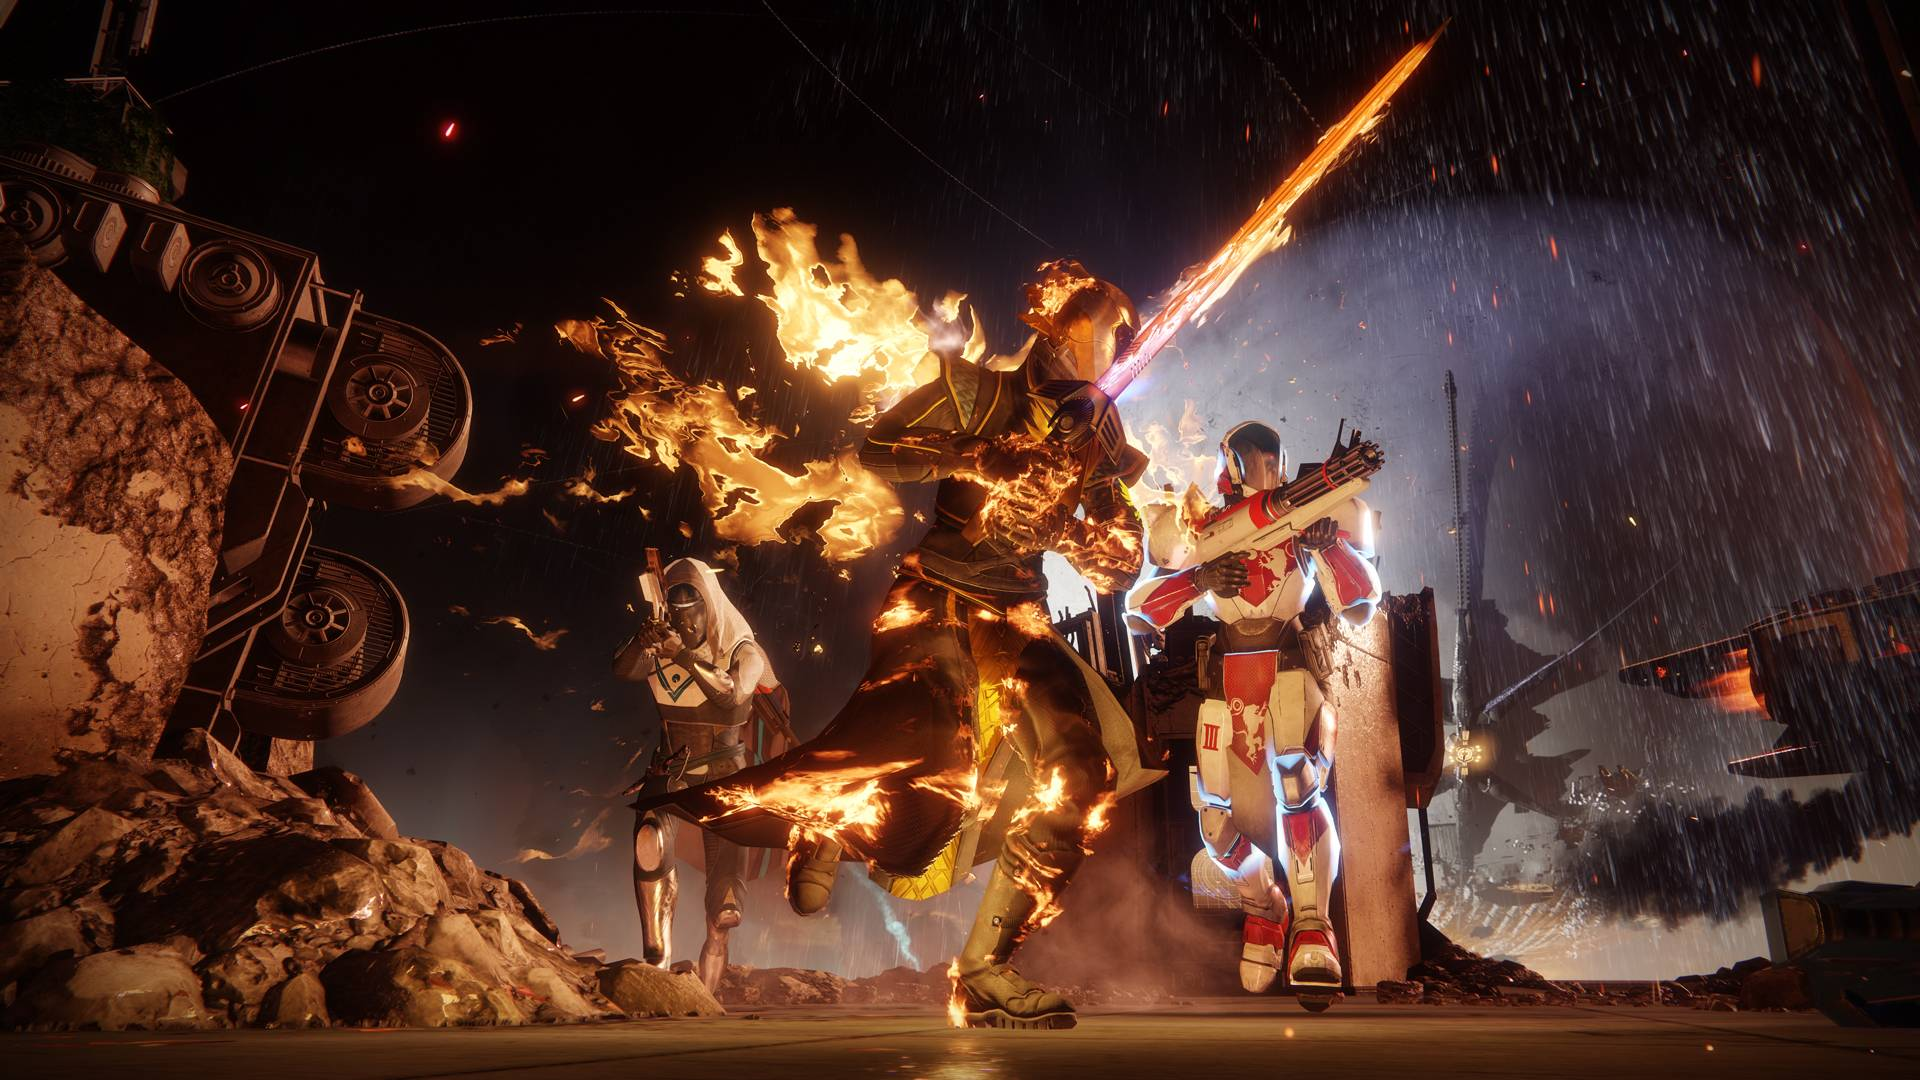 PC players will be able to, for the first time, experience the unique playstyle of Destiny.